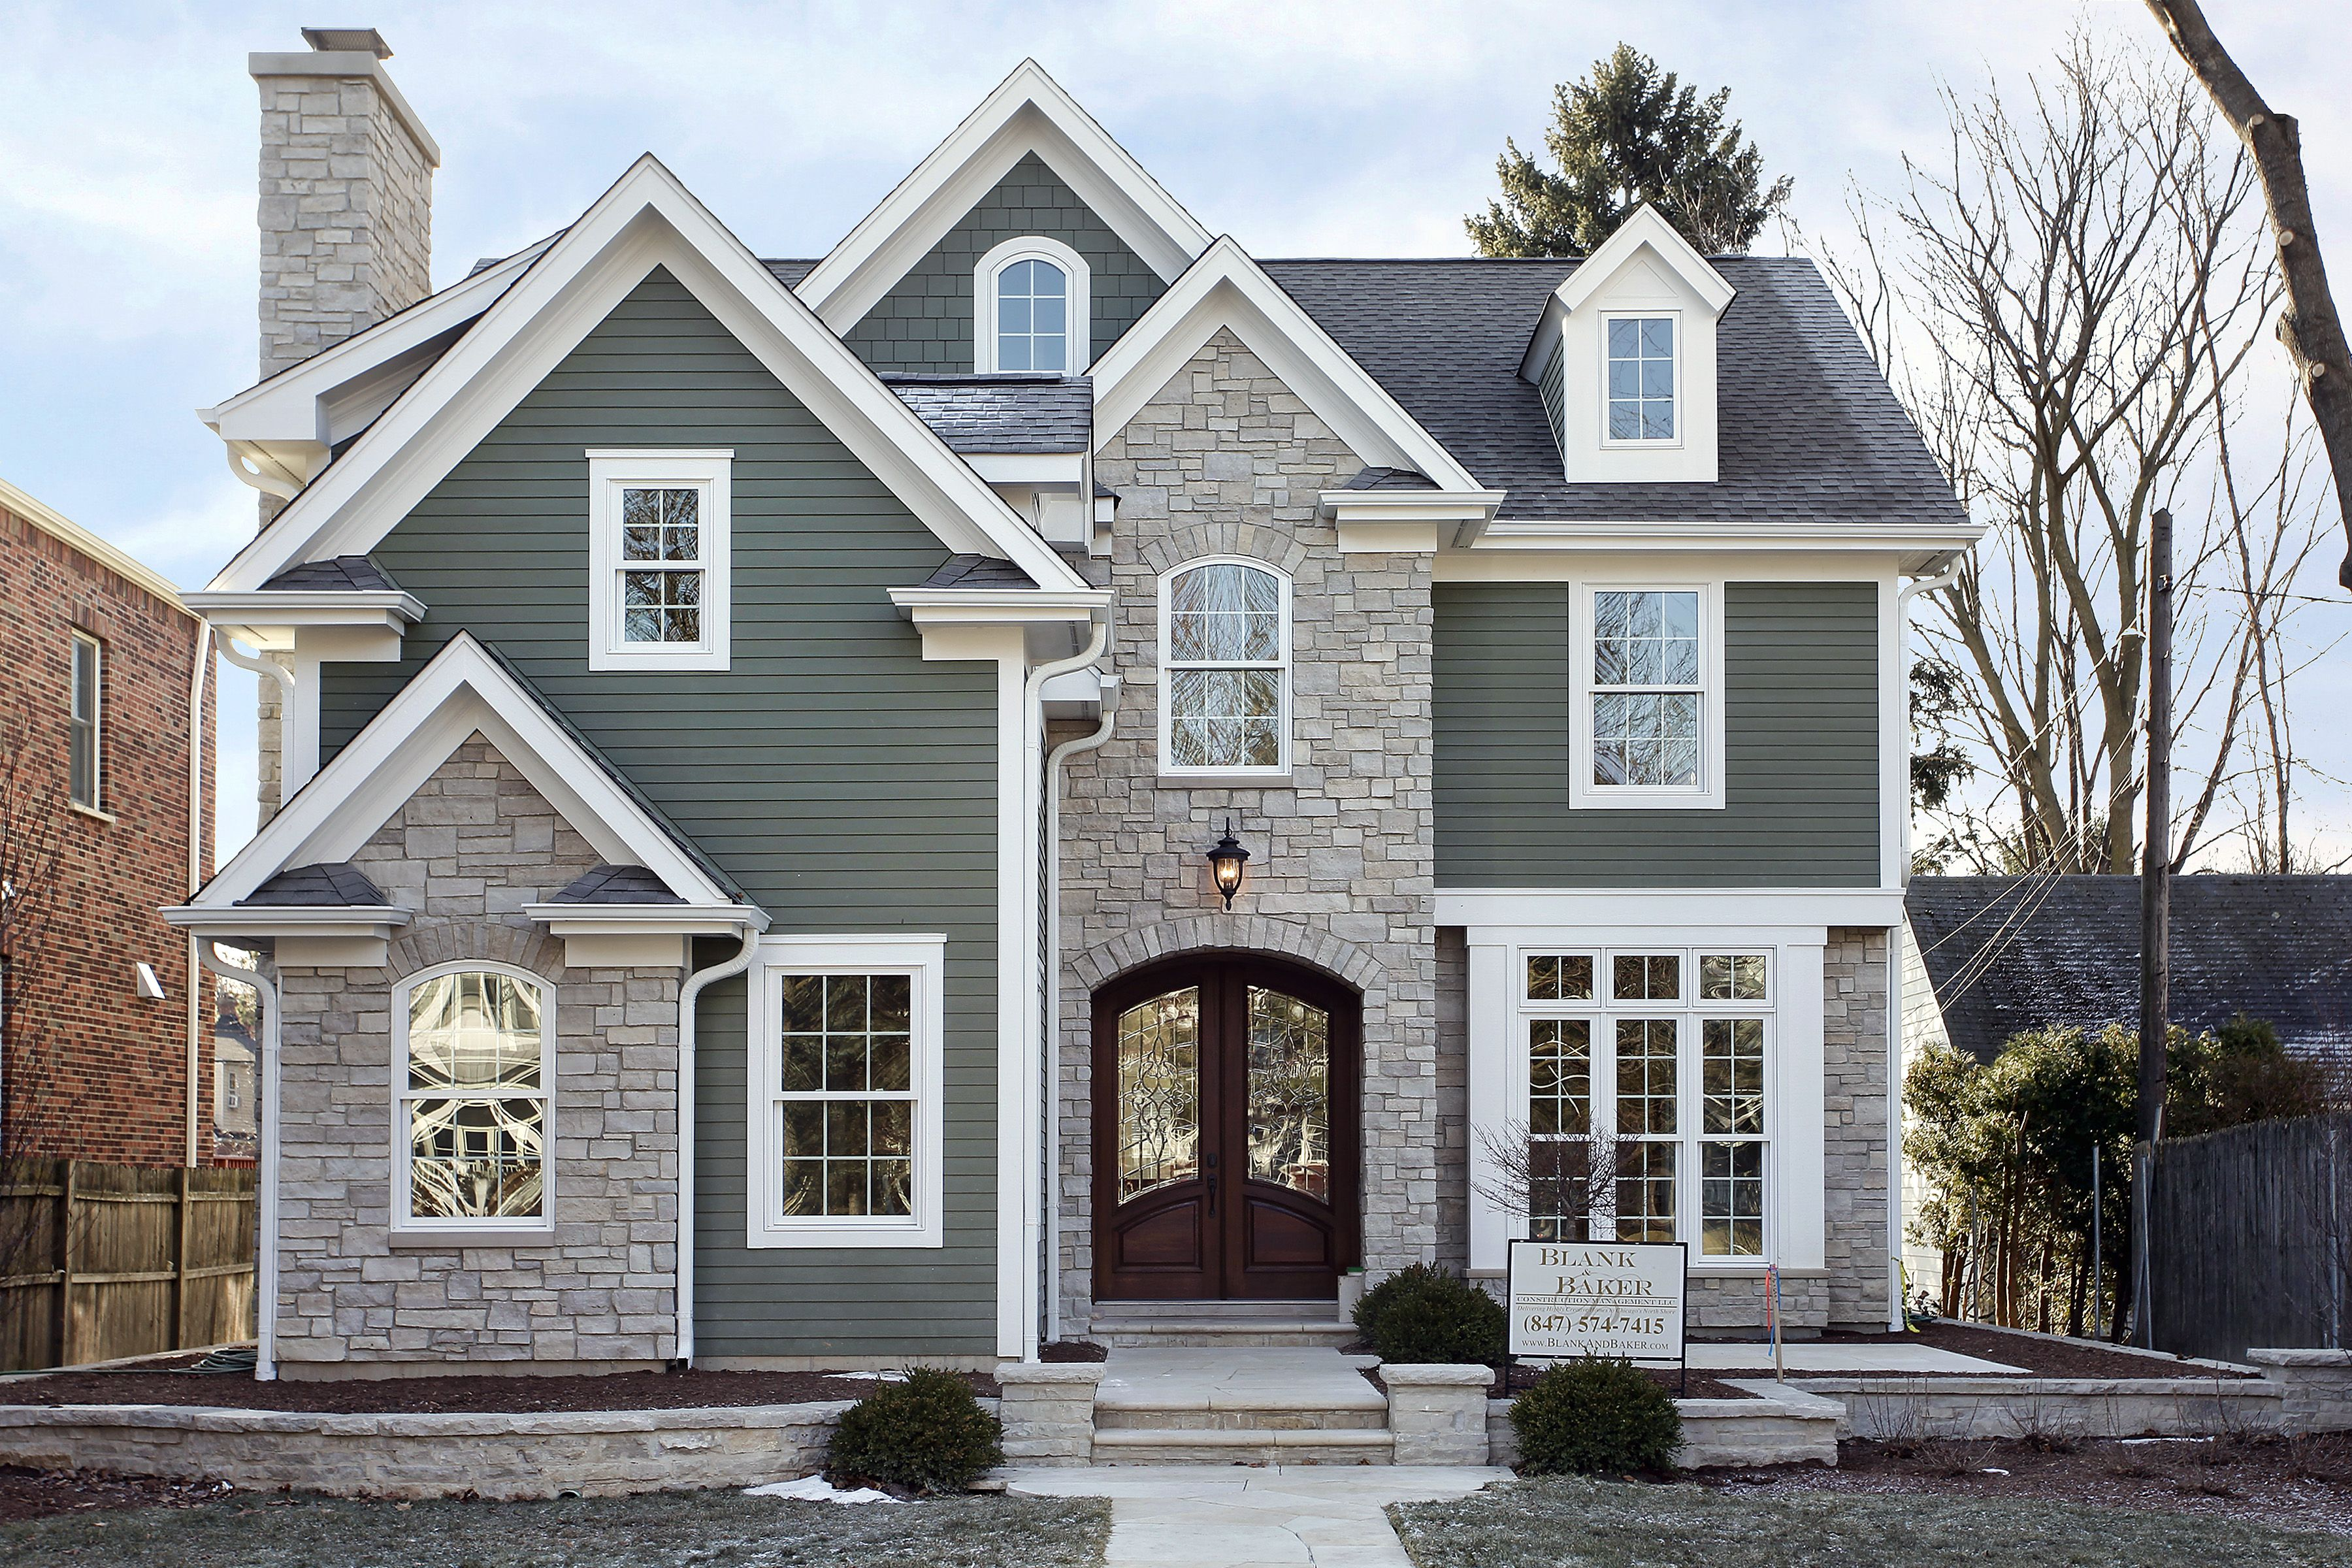 Custom Home Built In The Heart Of Winnetka Features James Hardie Siding And A Natural Stone